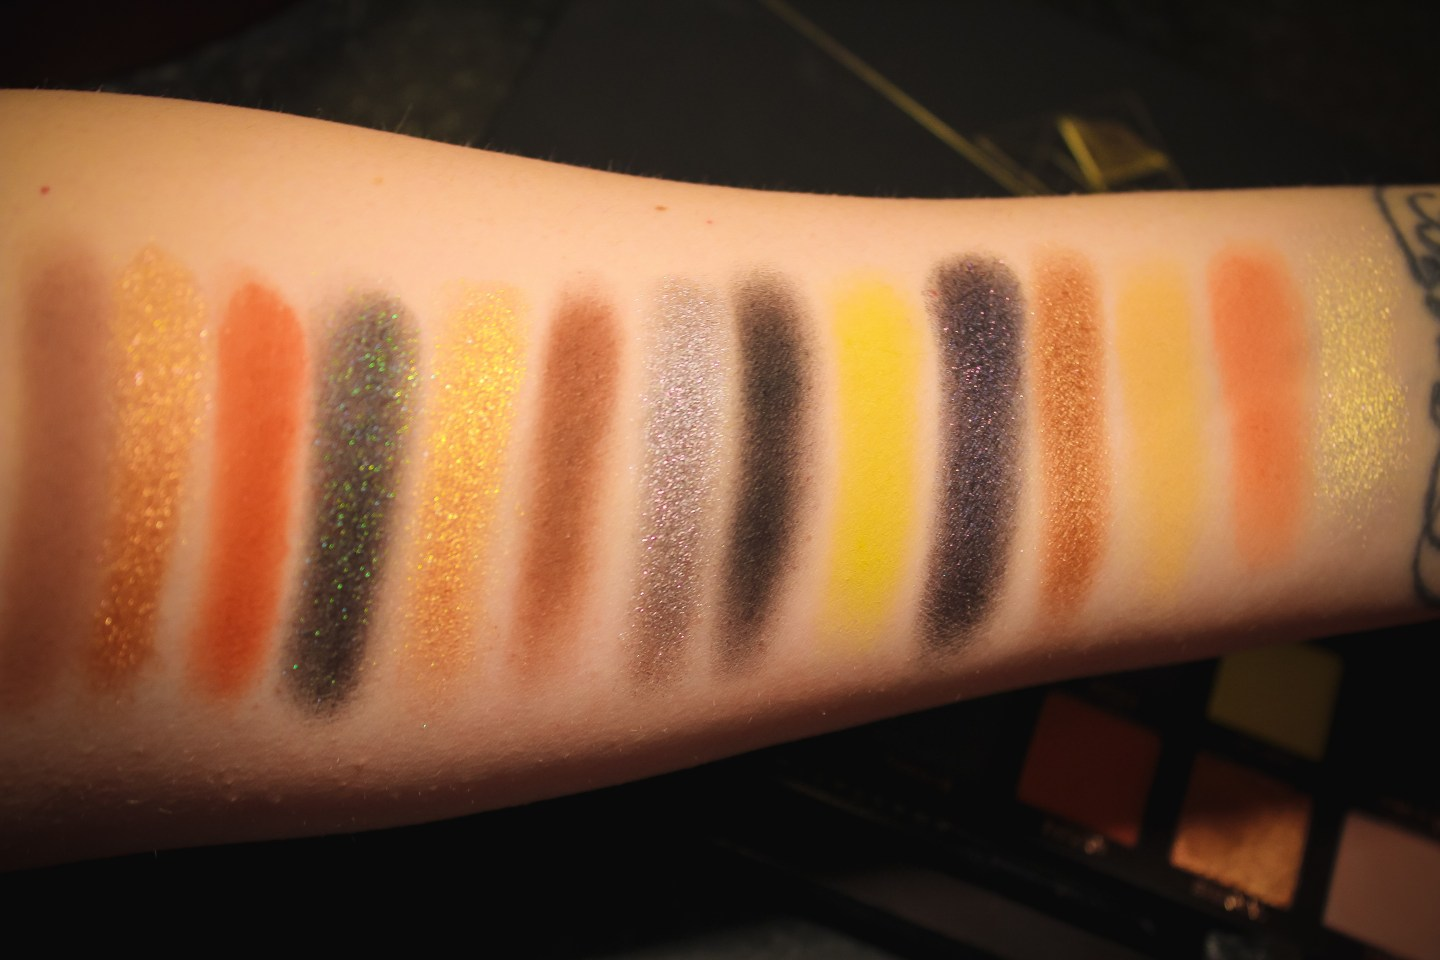 ABH Prism Palette Swatches